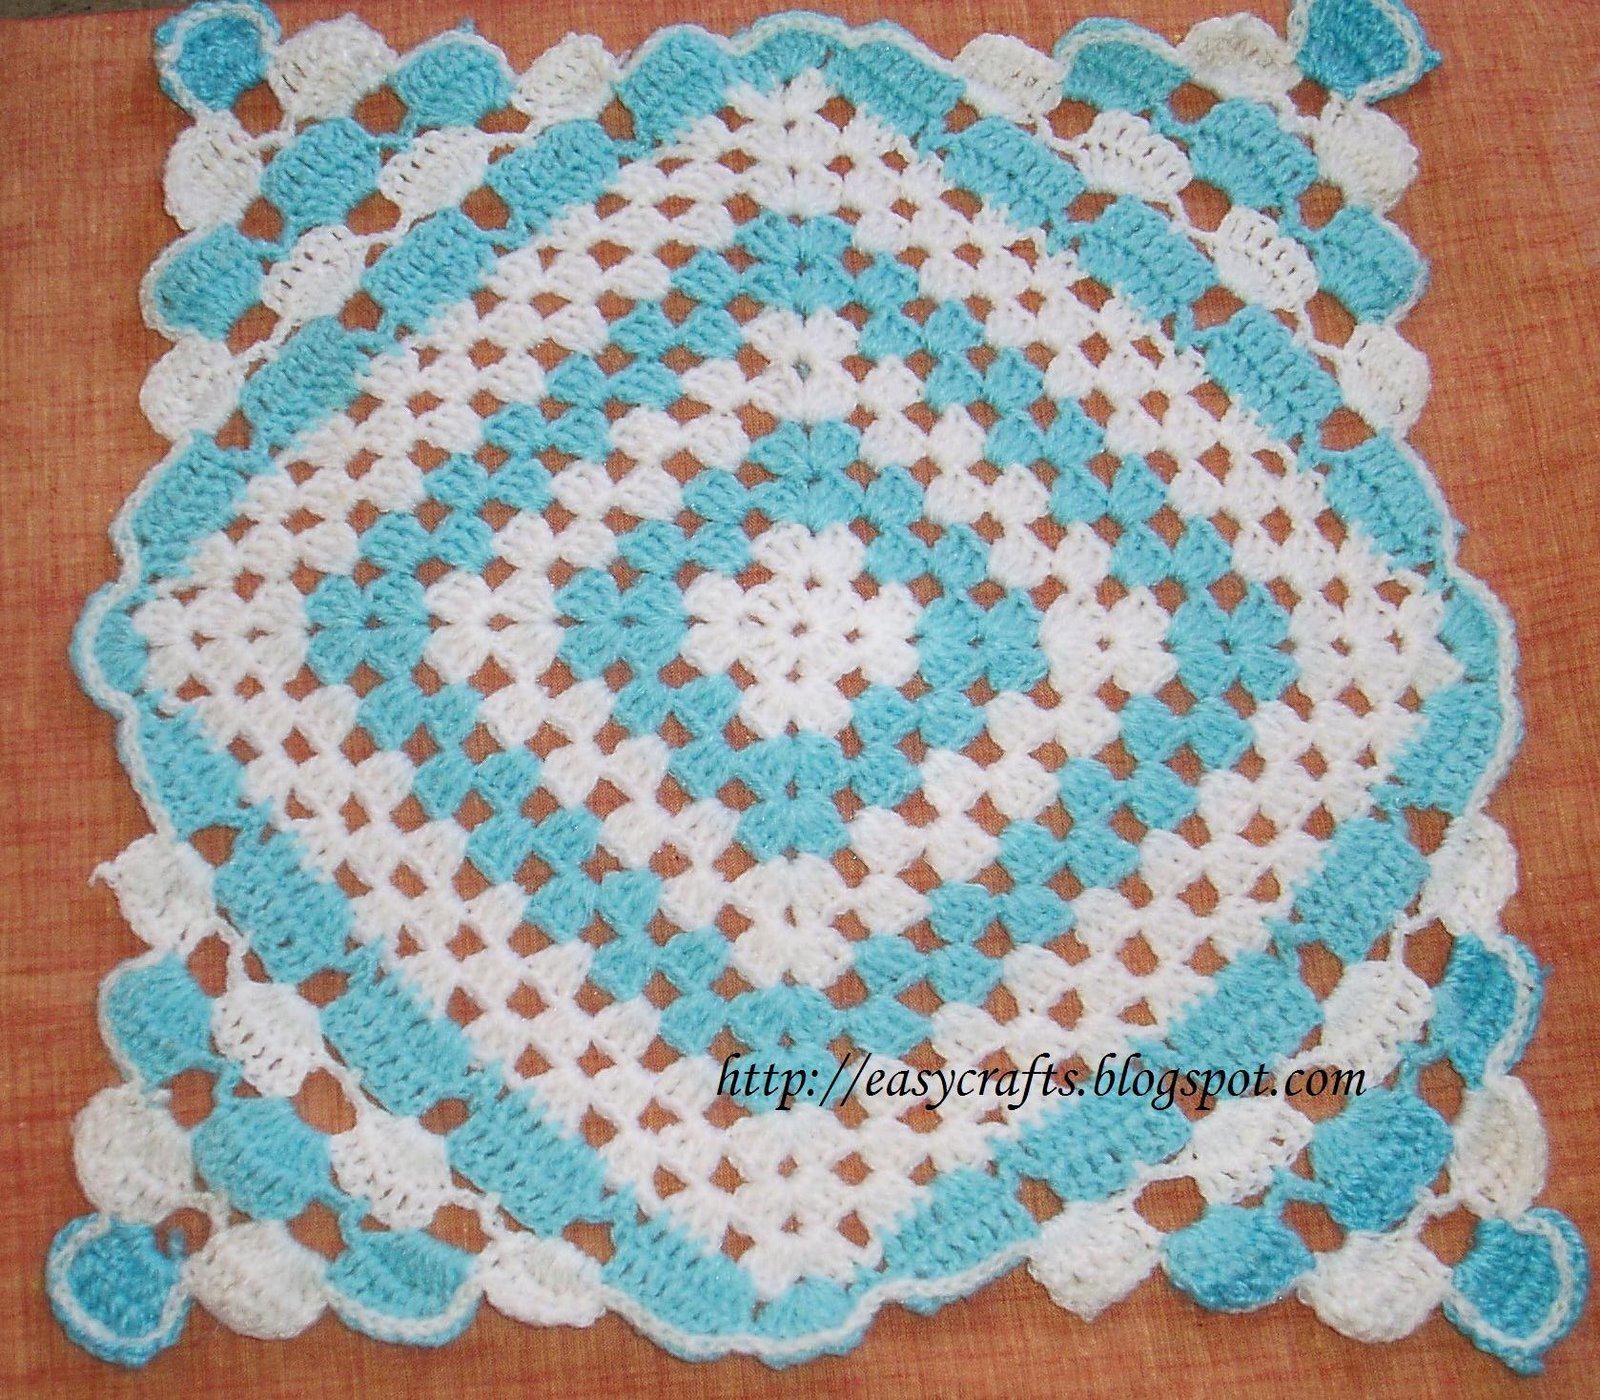 Free Crochet Granny Square Clothing Patterns : Easy Crafts - Explore your creativity: Crochet Square pattern